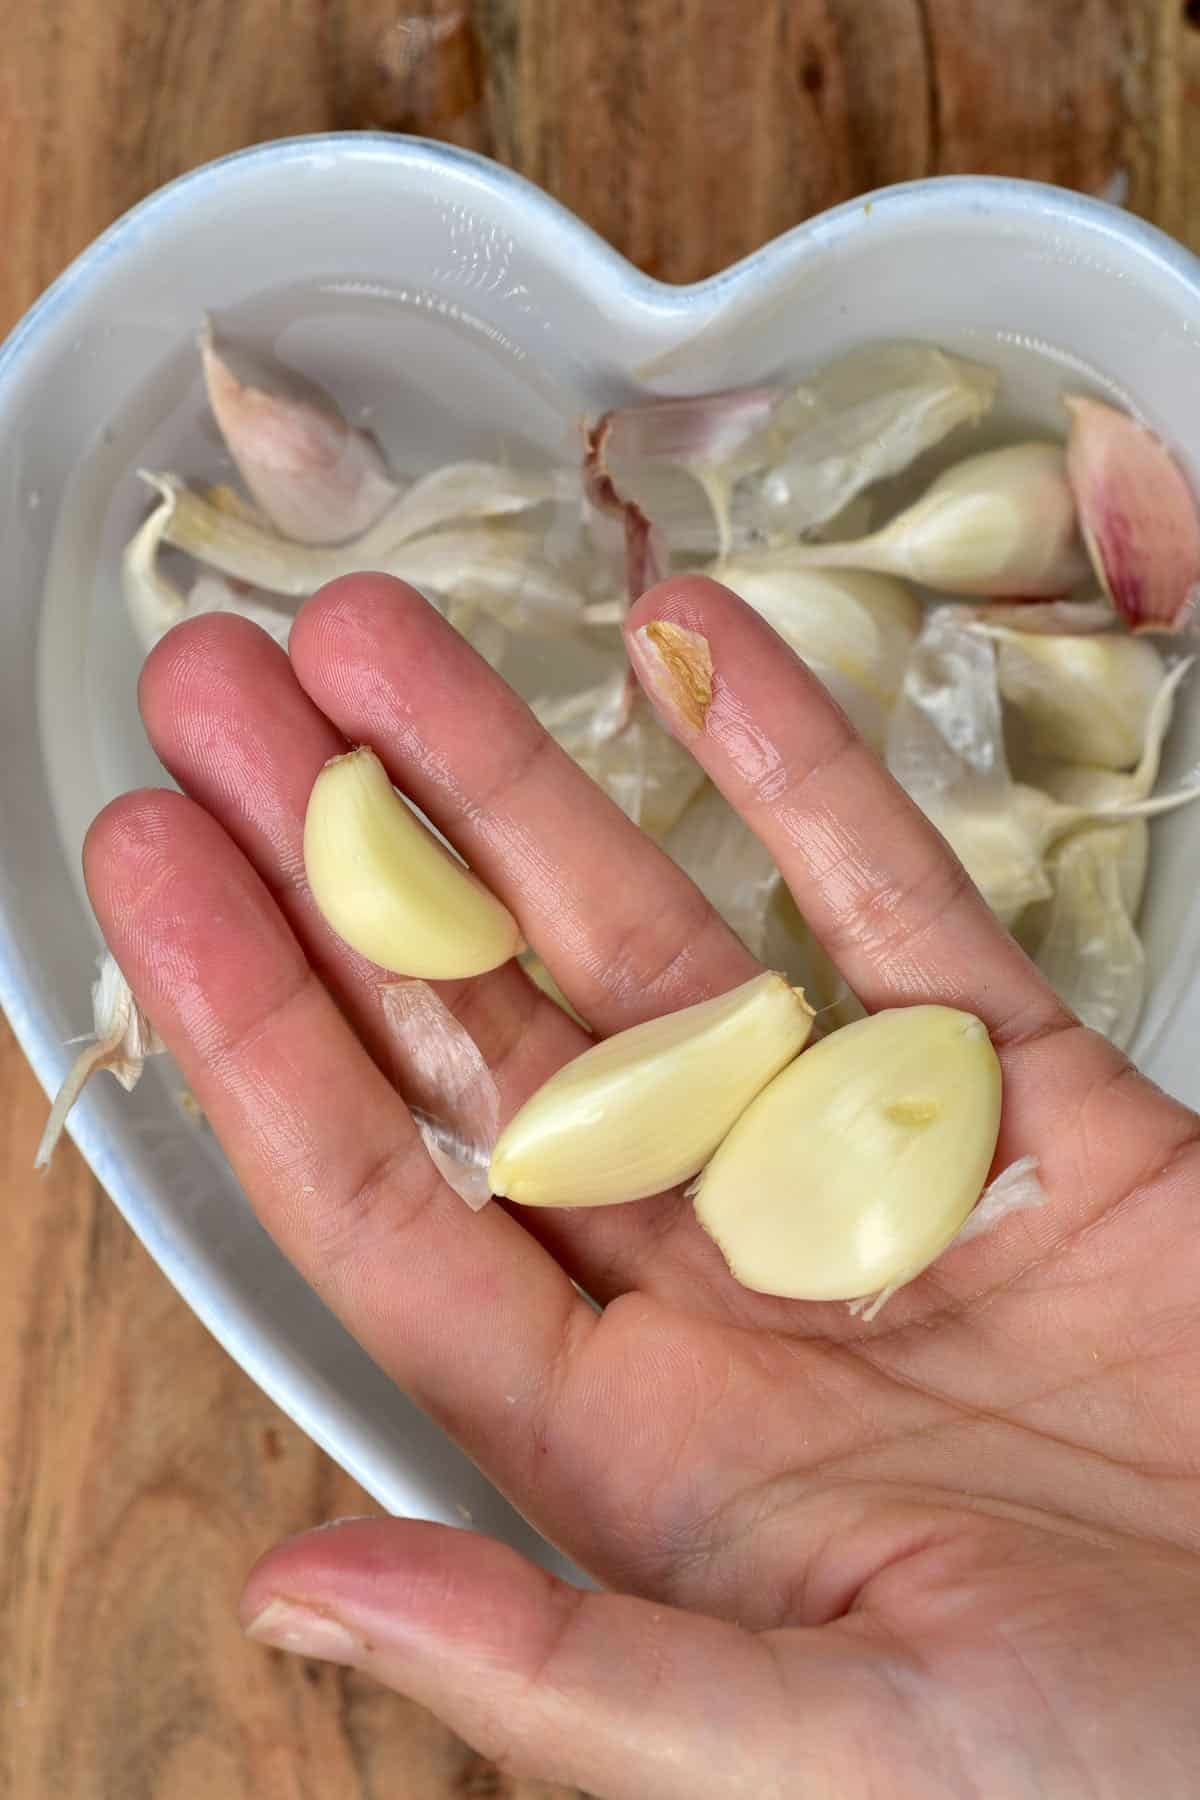 Garlic coming out of a bowl with hot water